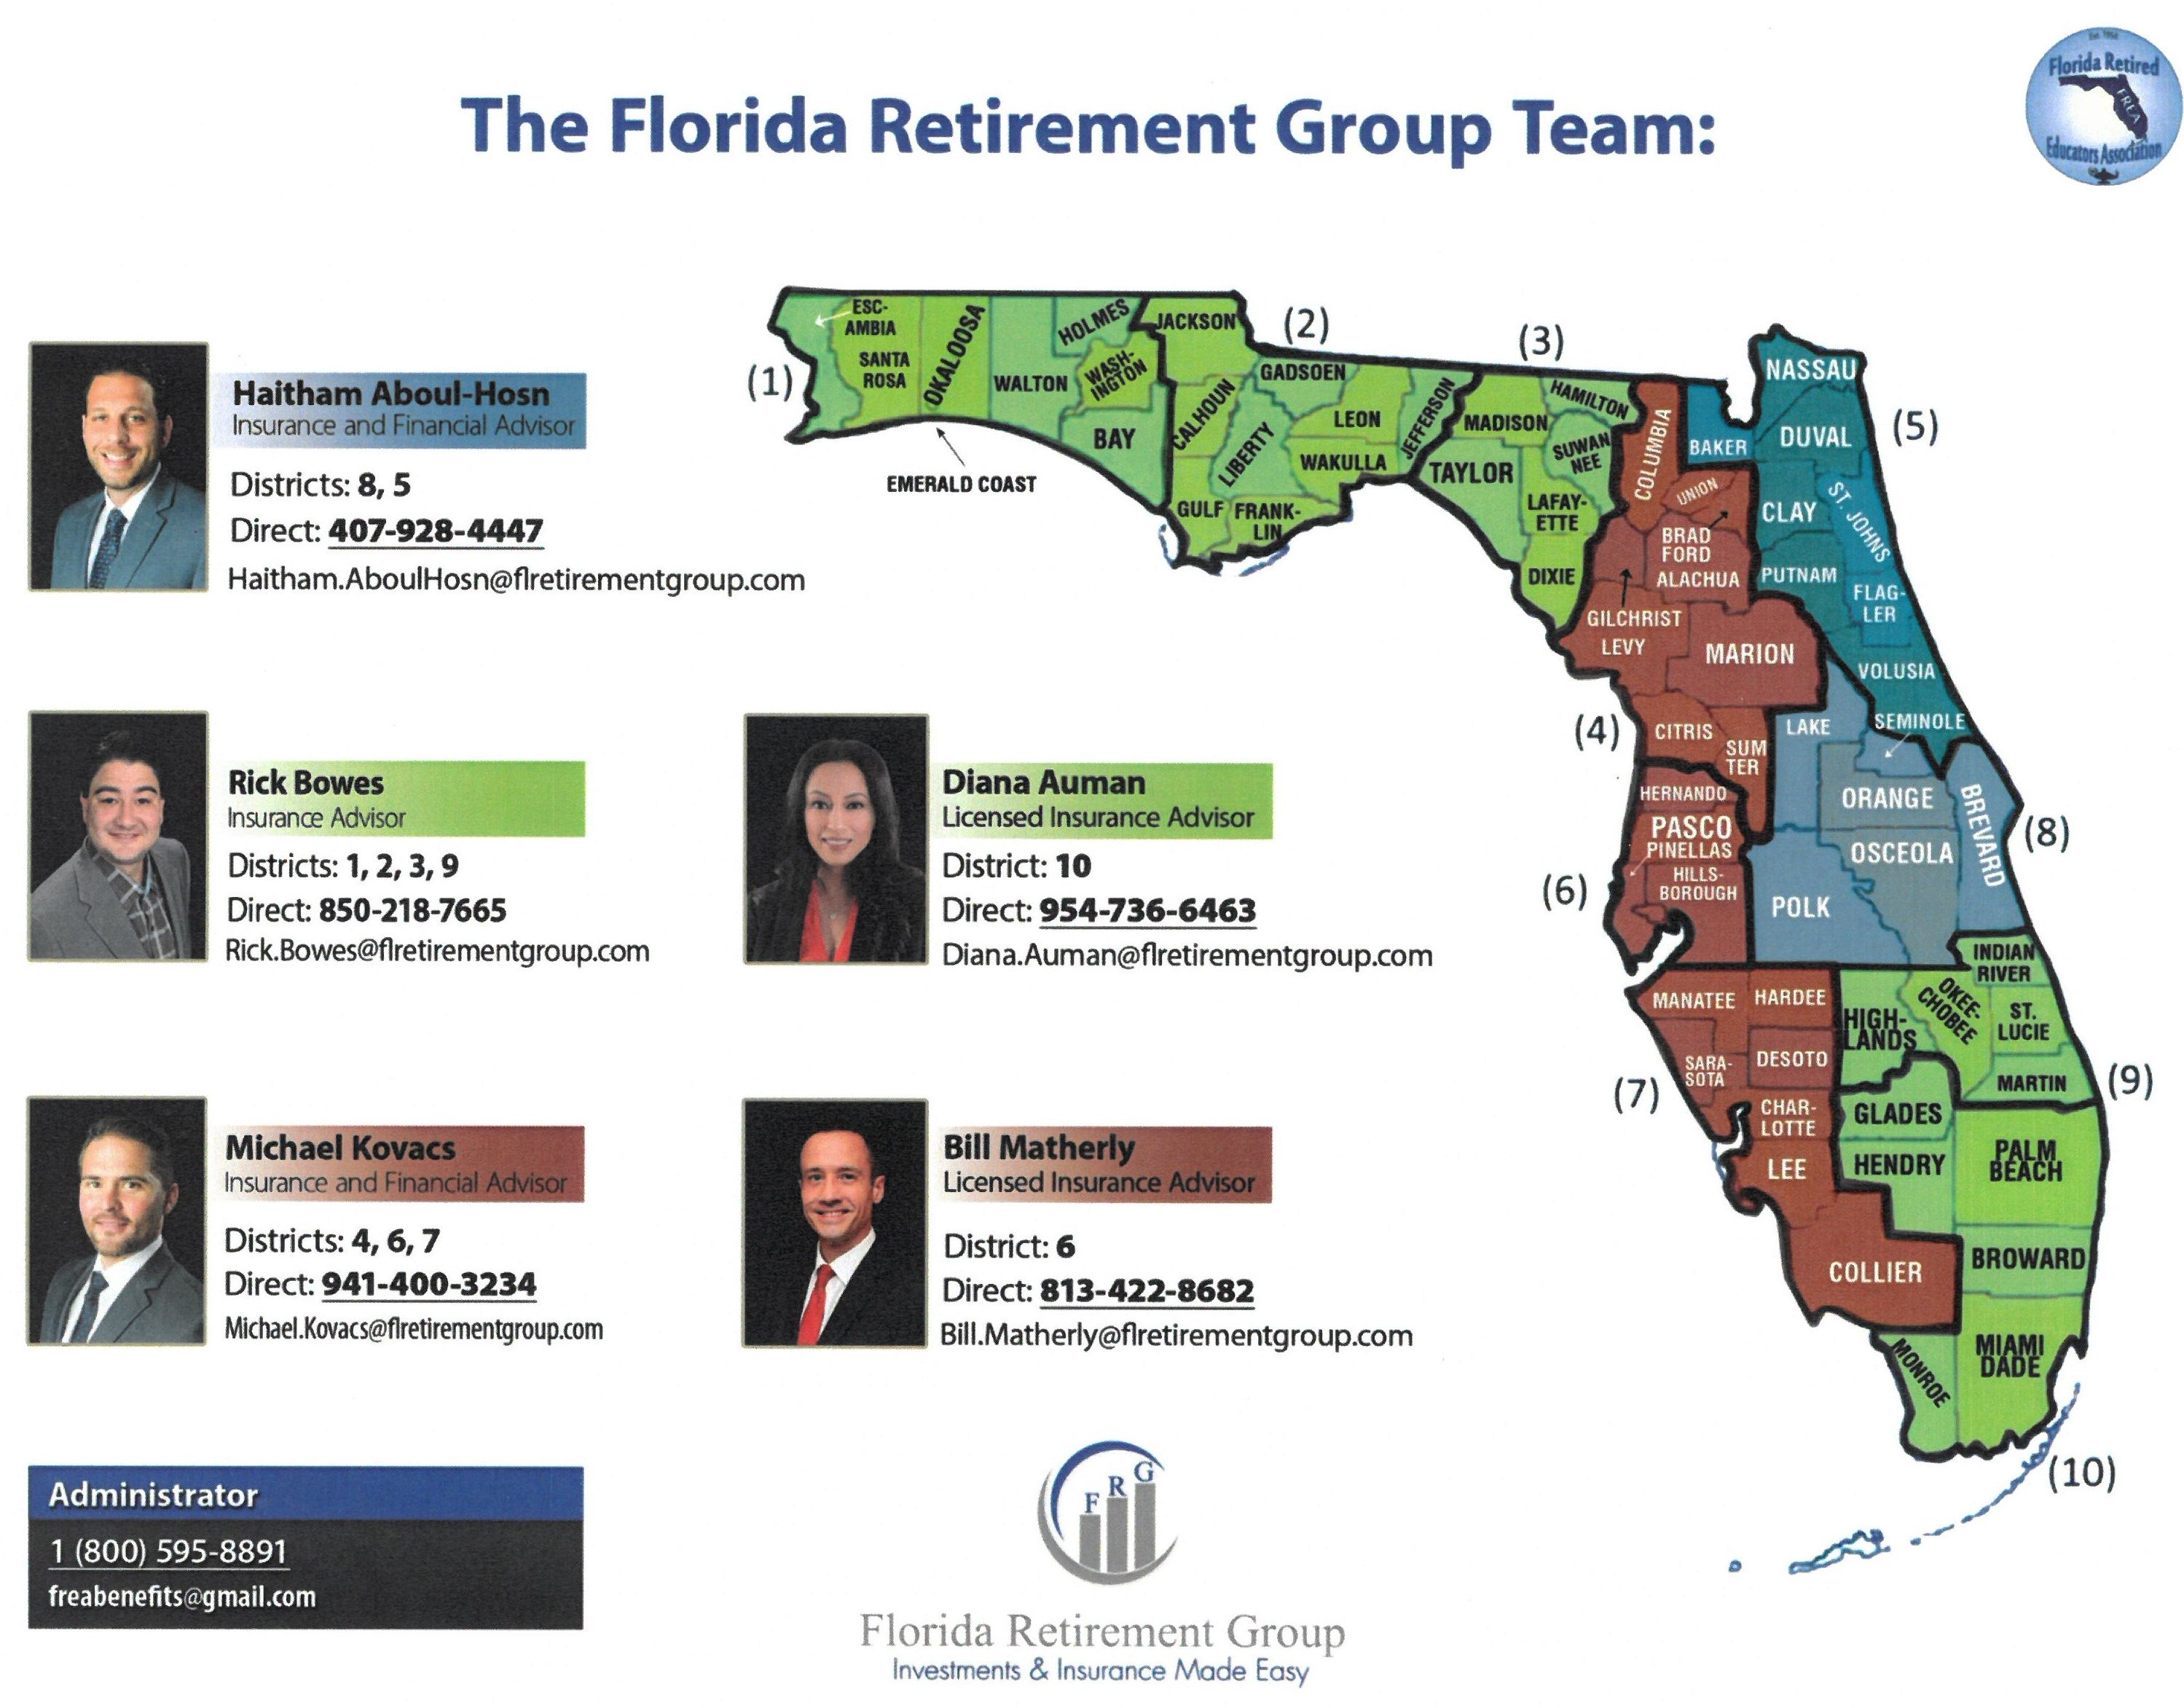 Florida Retirement Group Team